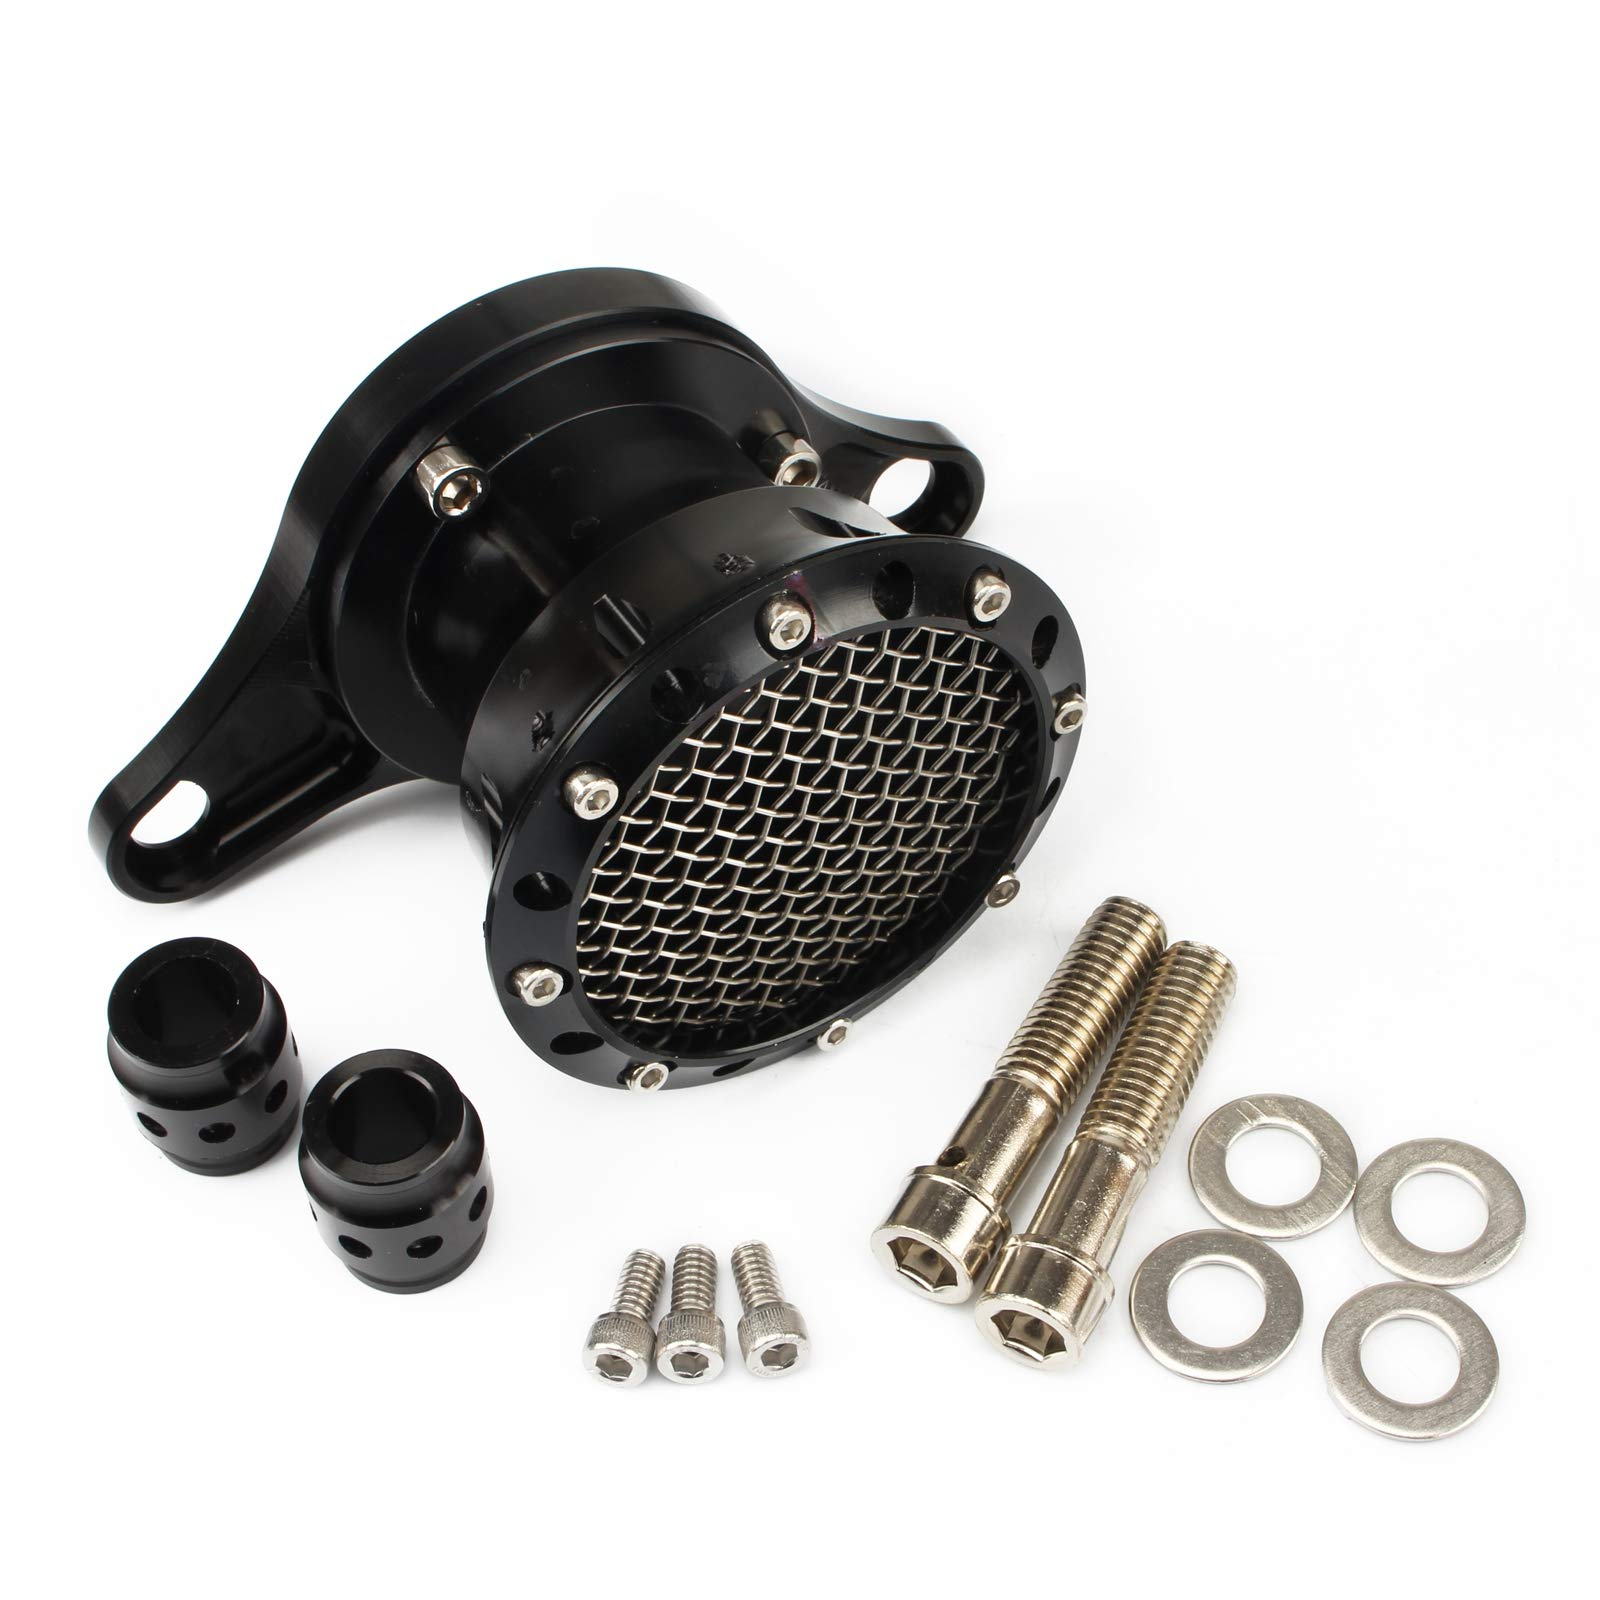 Air Cleaner Intake Filter System Kit For Harley Davidson Sportster XL883 XL883N XL883R XL883P XL1200 XL1200L XL1200X Iron 883 Forty Eight XL1200X 2004-2016 Billet Aluminum CNC Machined Washable